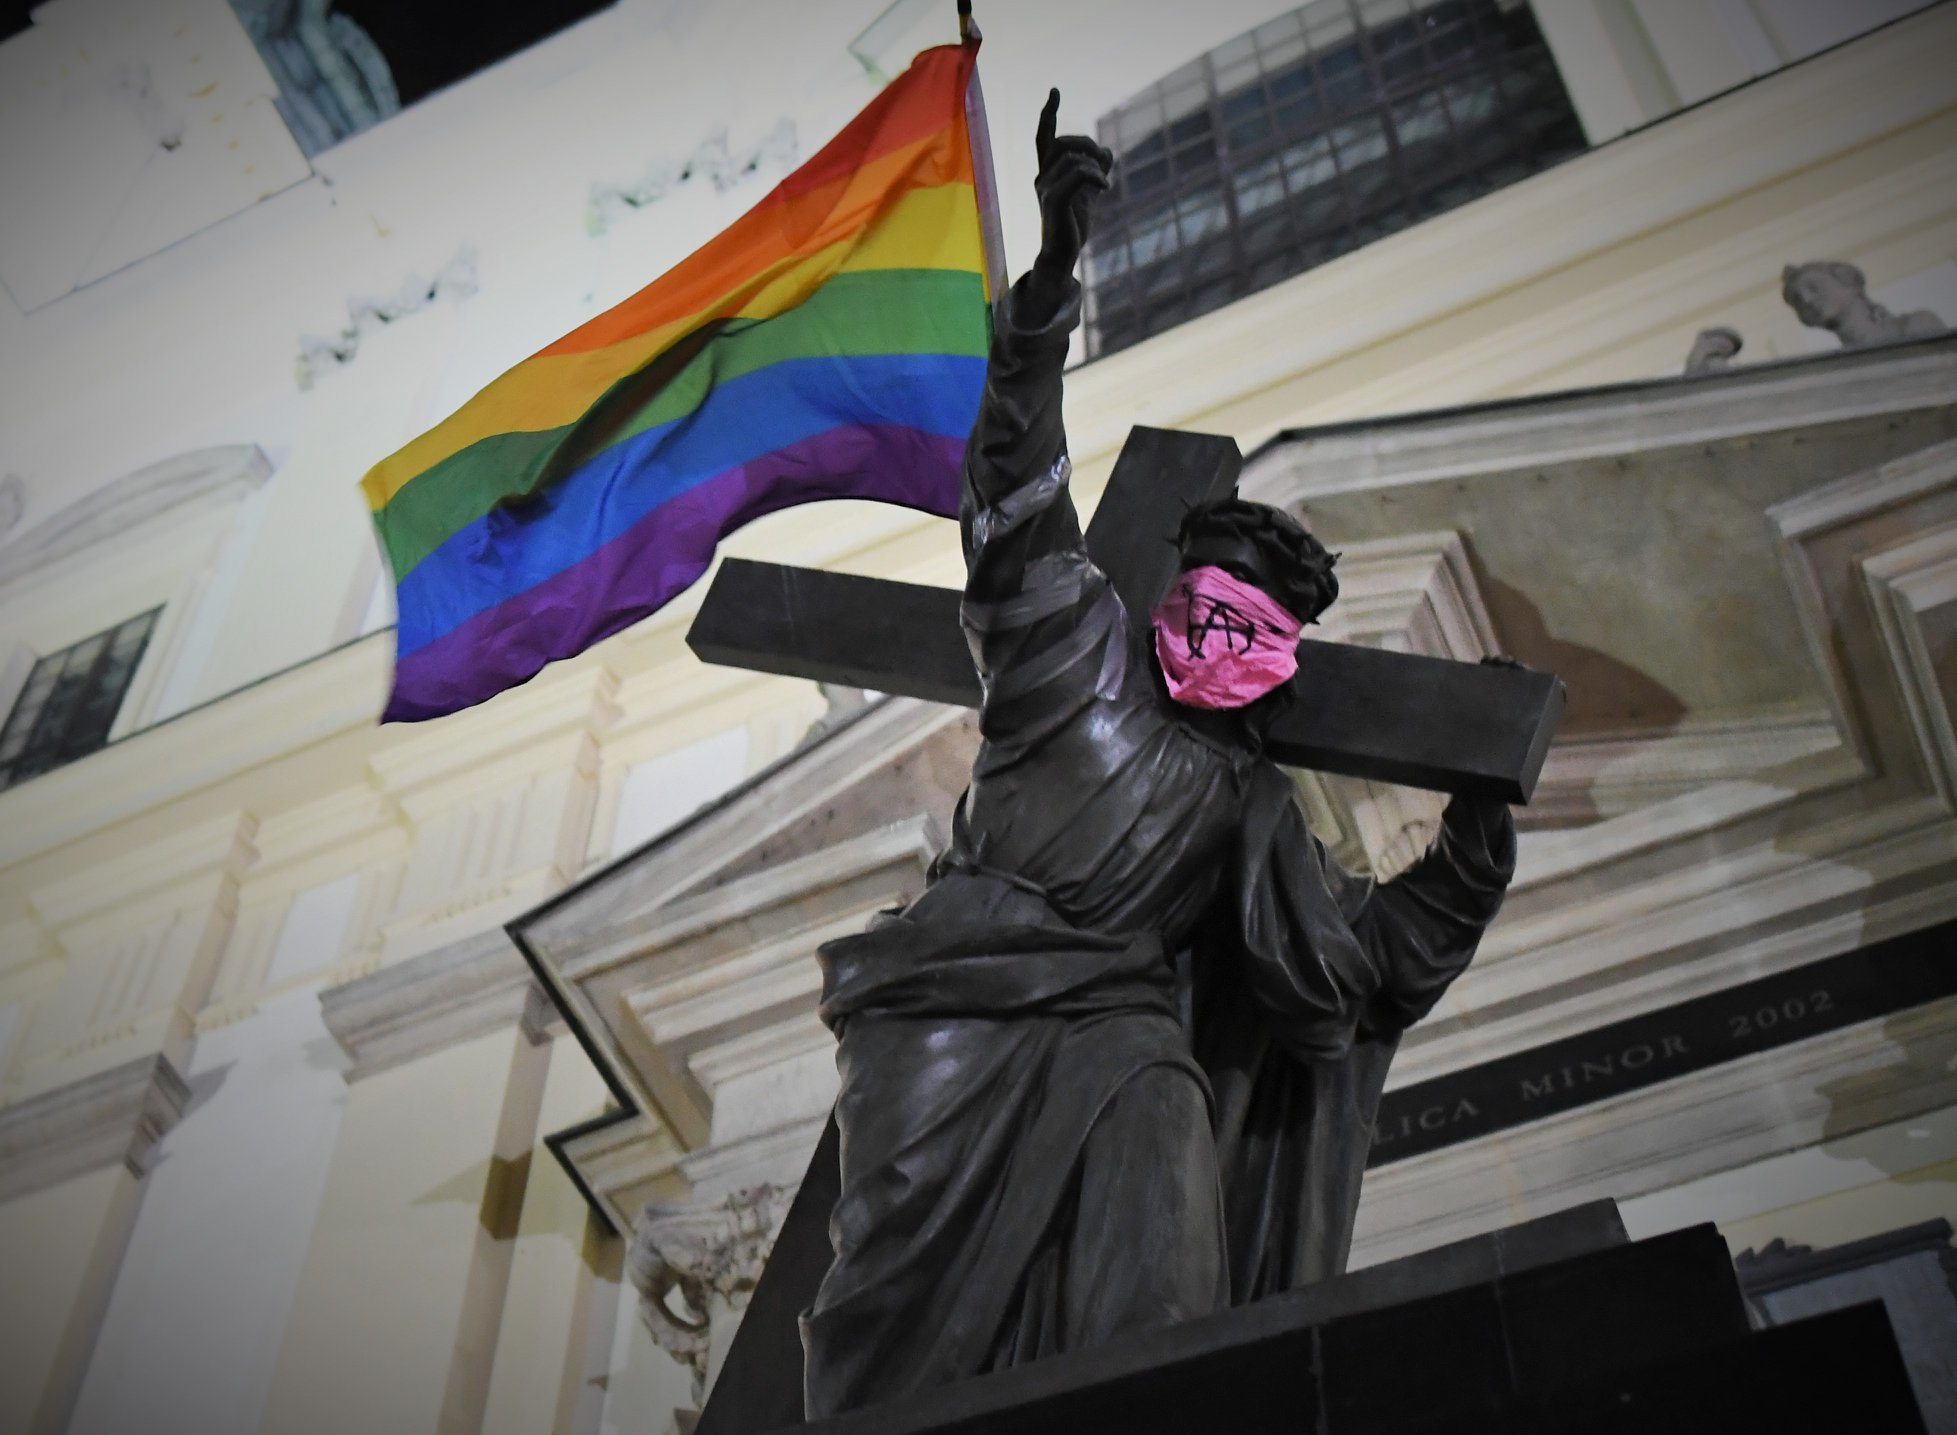 Statue of Jesus carrying Pride flag and wearing anarchist bandana